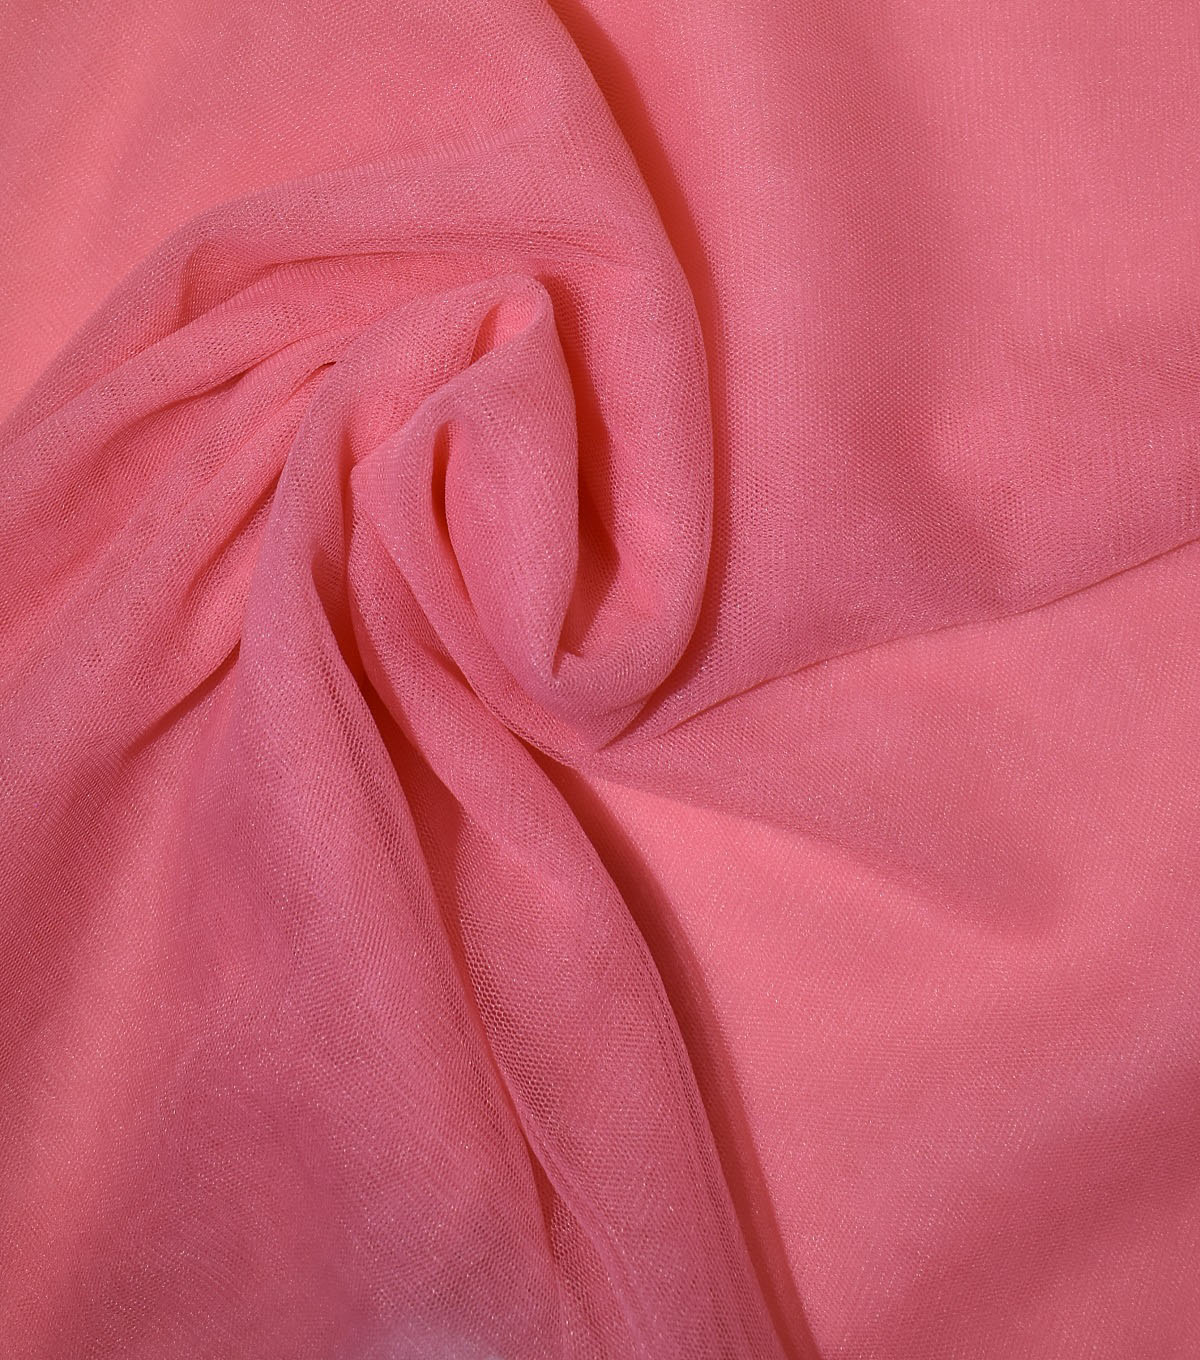 Casa Collection Solid Tulle Fabric 57\u0027\u0027, Shell Pink